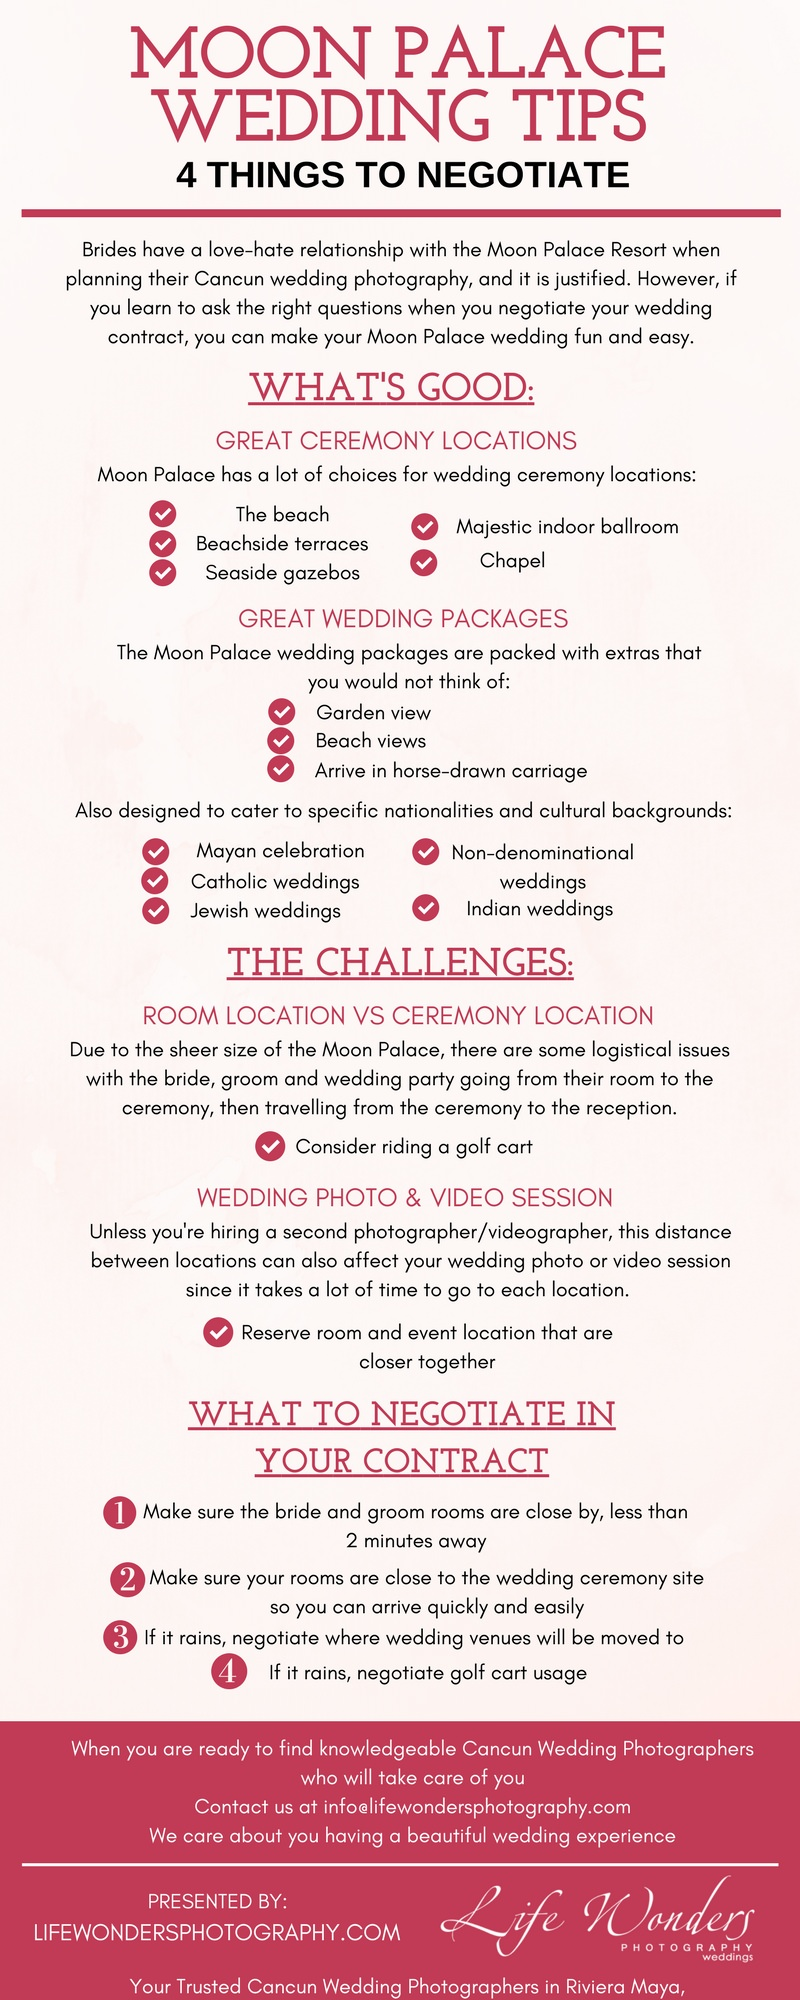 Infographic moon palace resort wedding tip - 4 things to negotiate